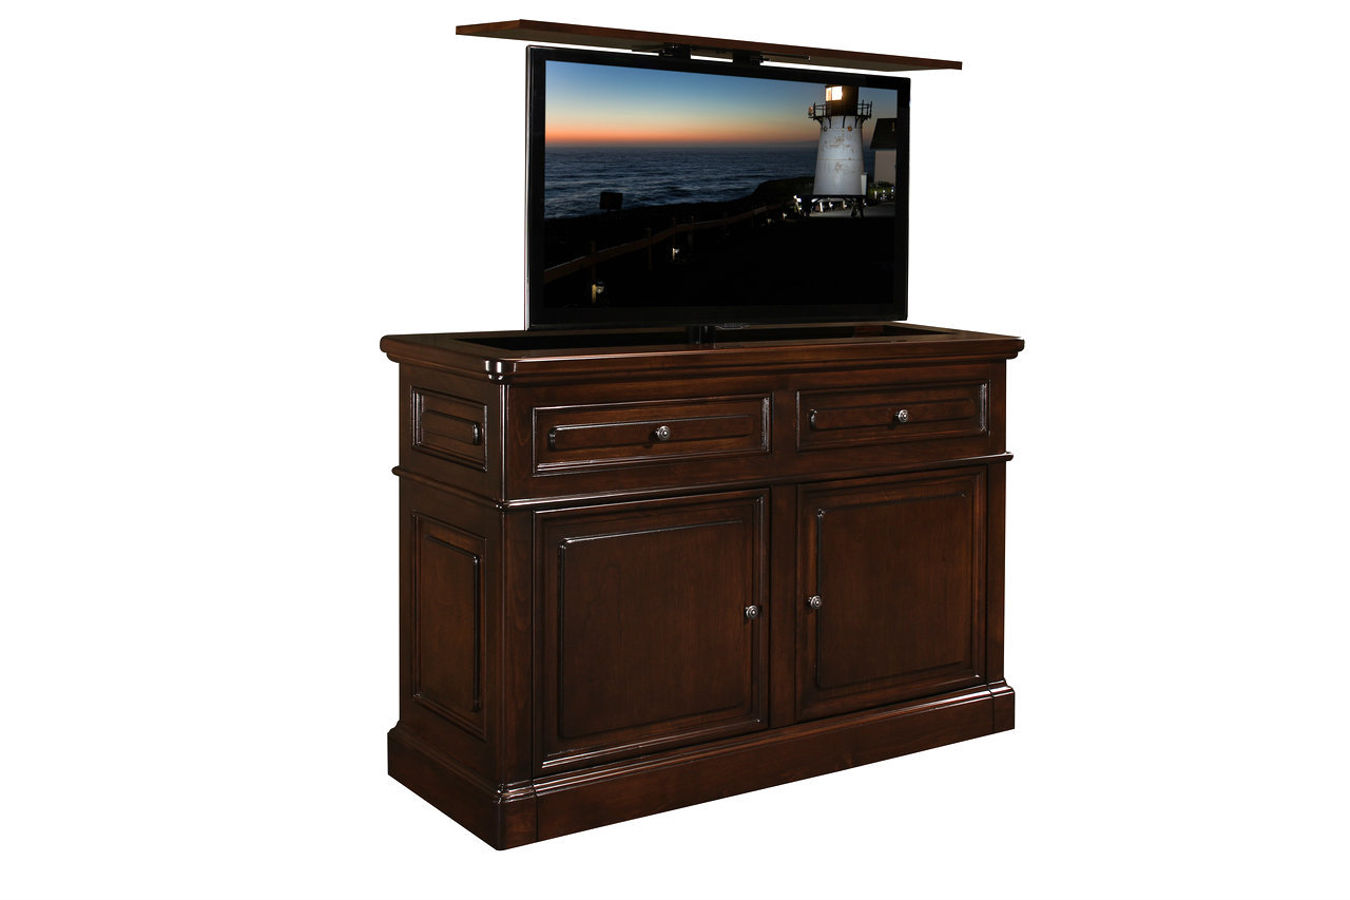 Point Loma Auburn Brown remote controlled TV Lift cabinet is Made in US and comes with a 10 year warranty.  End of bed furniture with Television